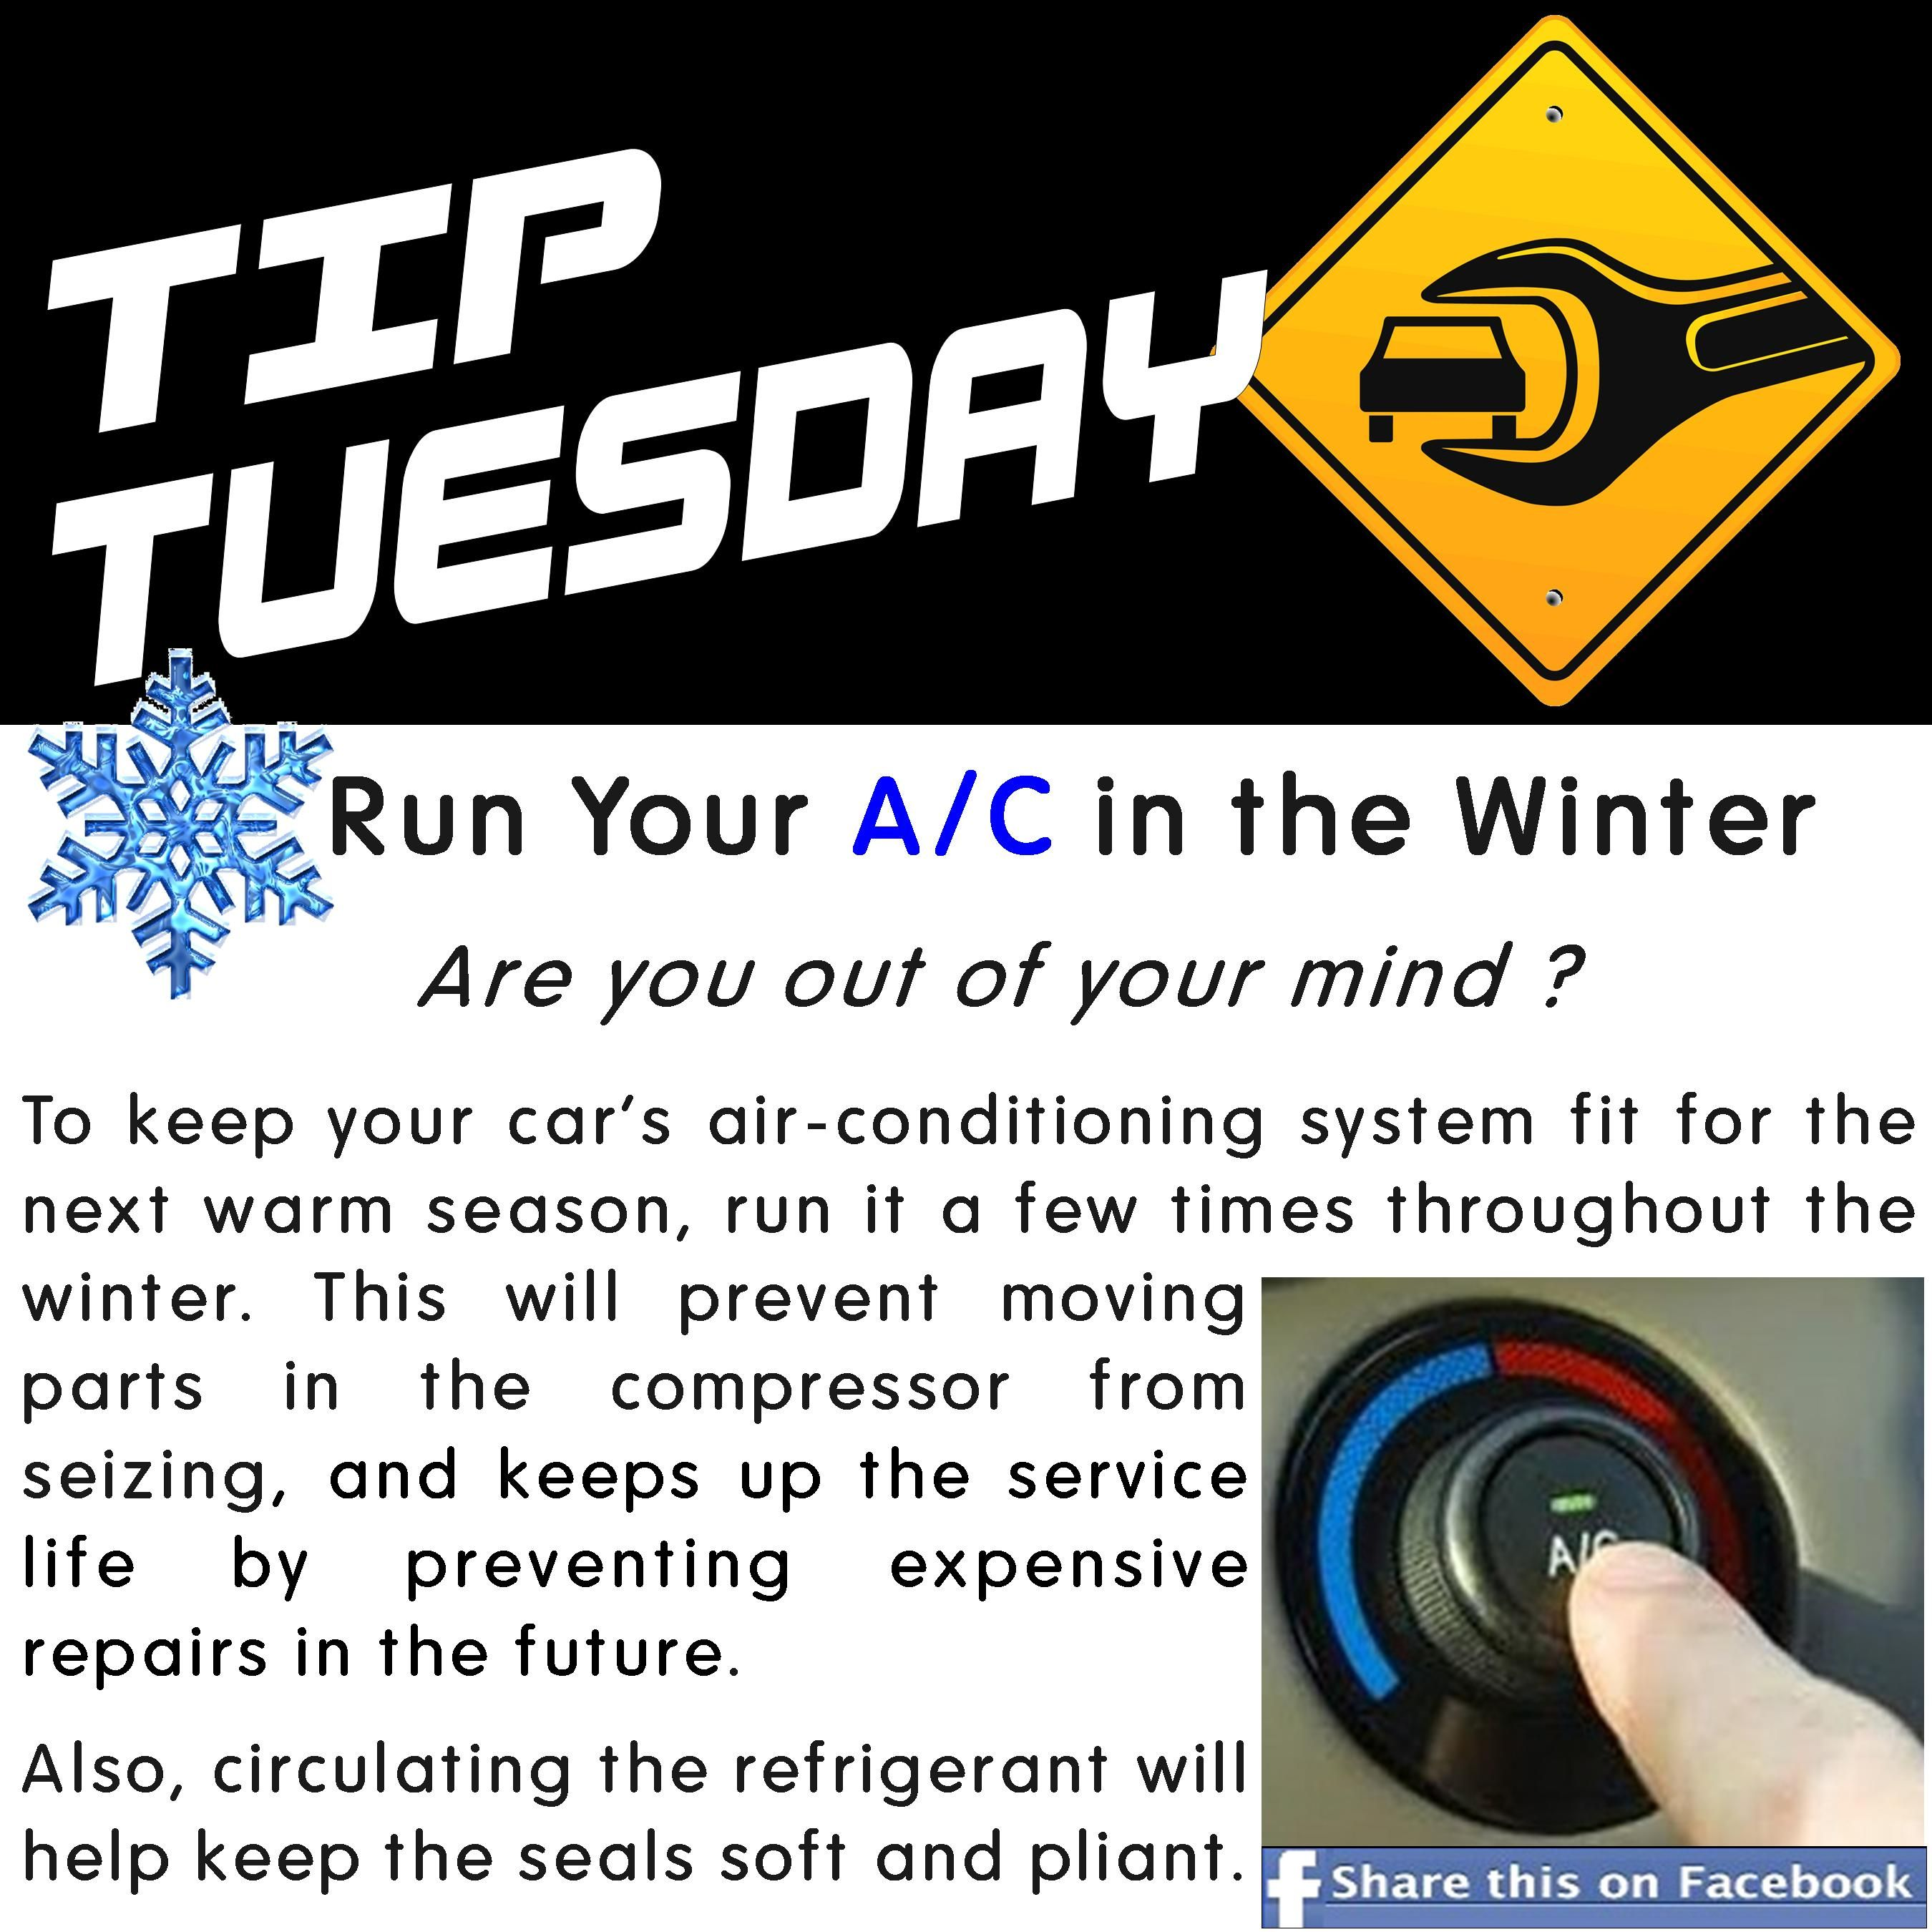 Car Care Tip Run Your A/C in the Winter Are you out of